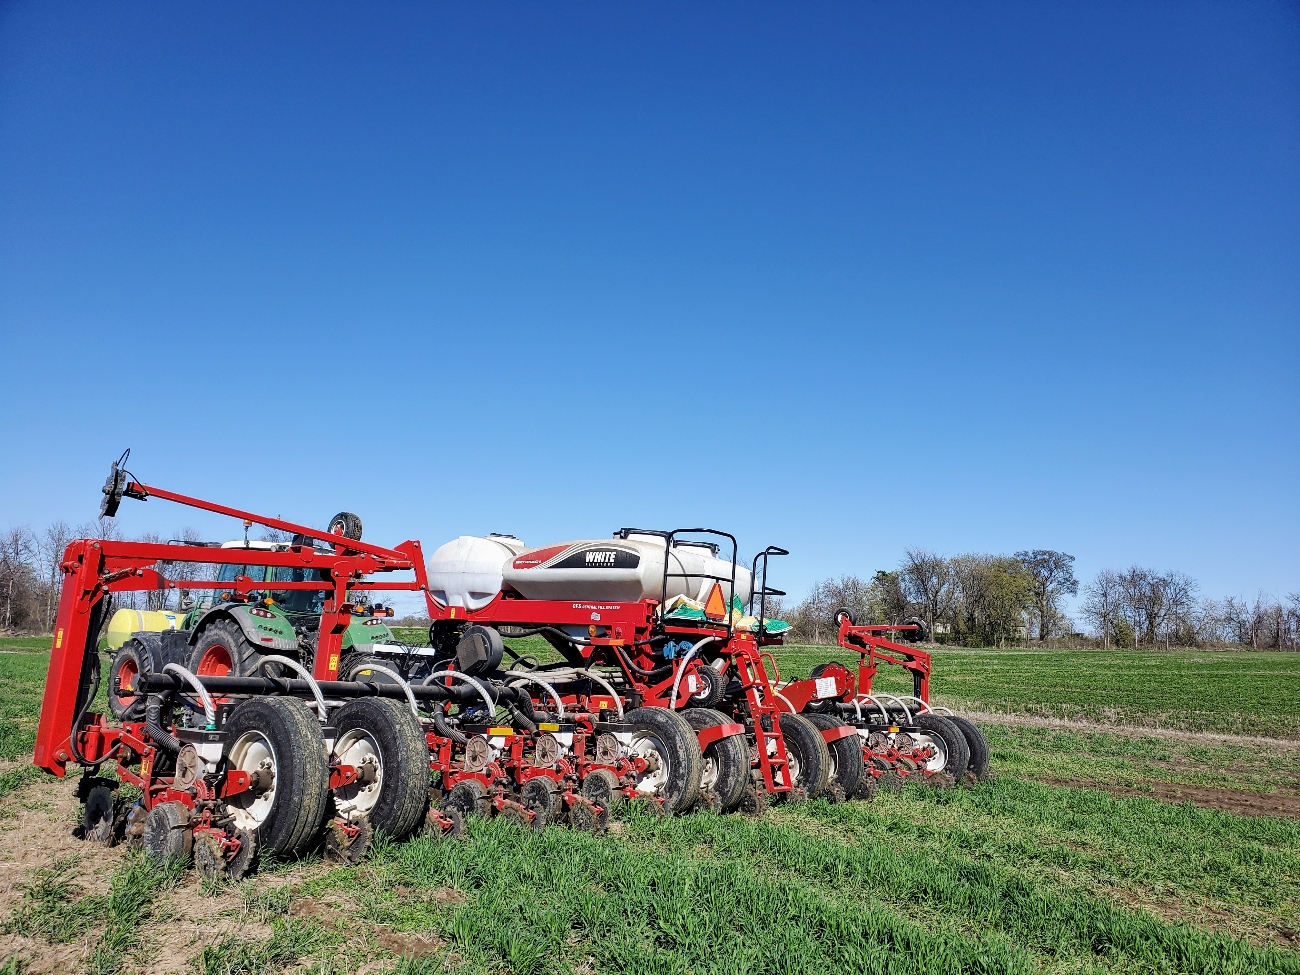 Planting cornsilage April 26th in standing rye